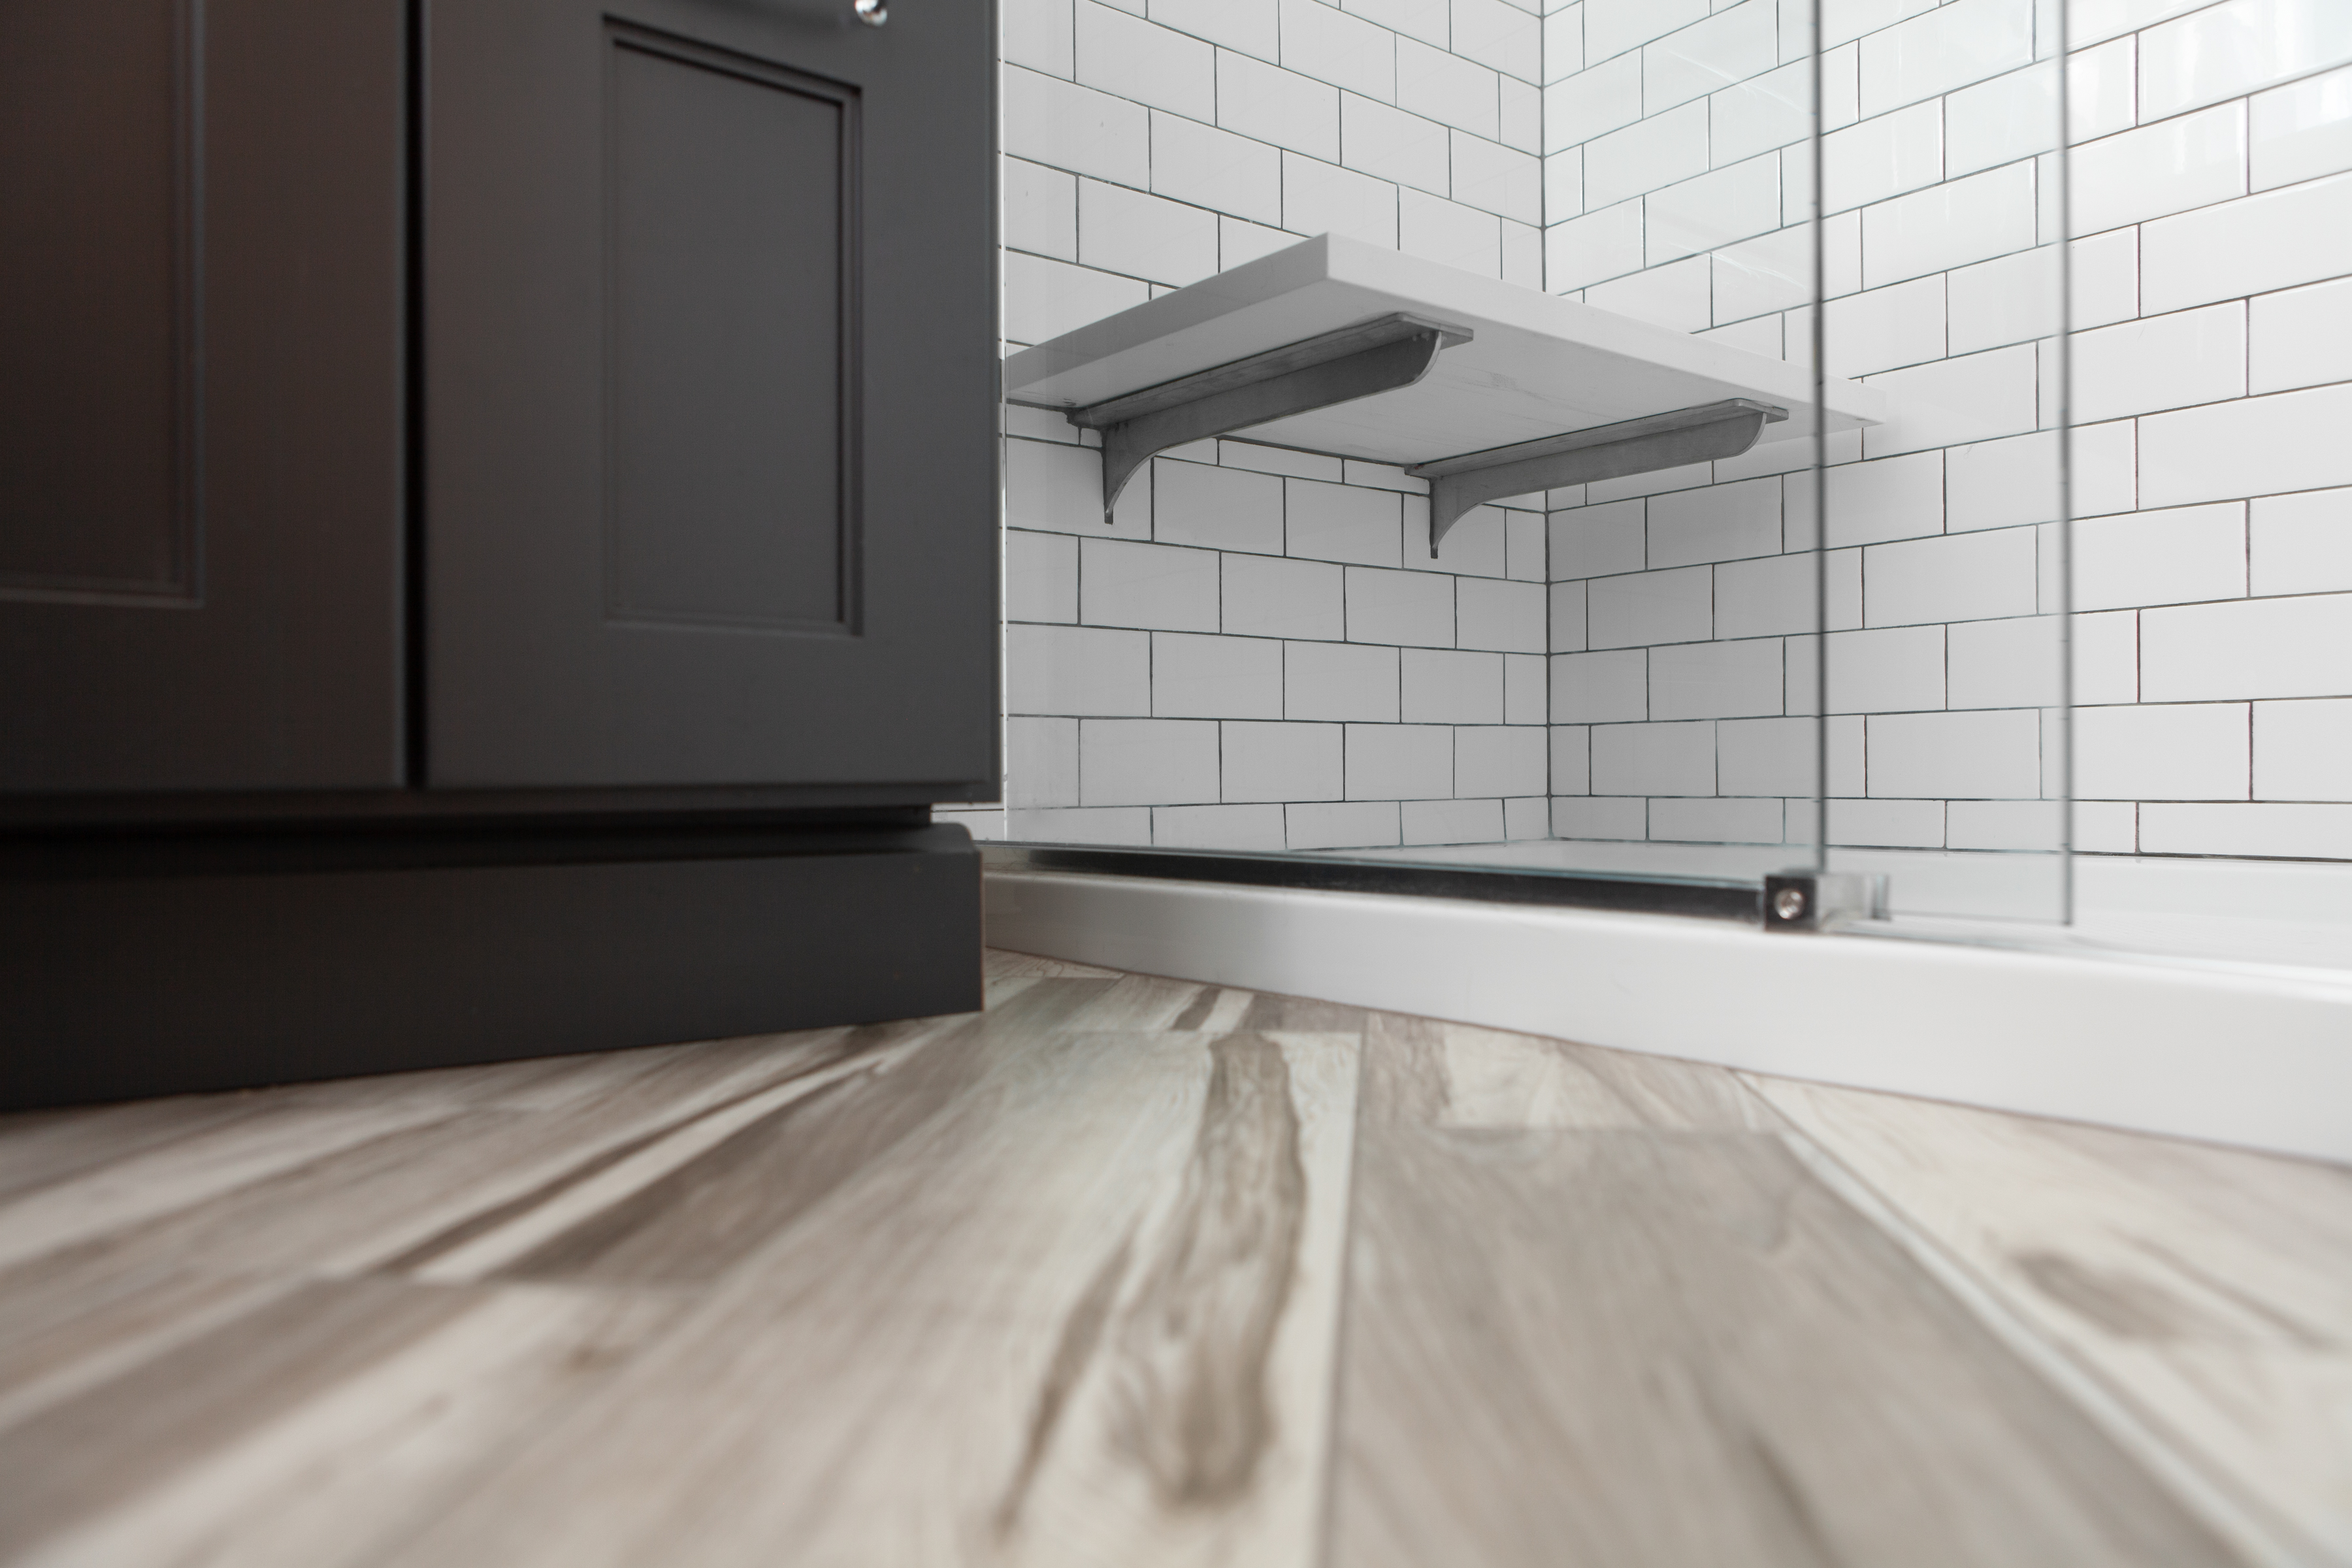 Painted black cabinetry contrasting beautiful hardwood floors and the simplicity of white subway shower tiles